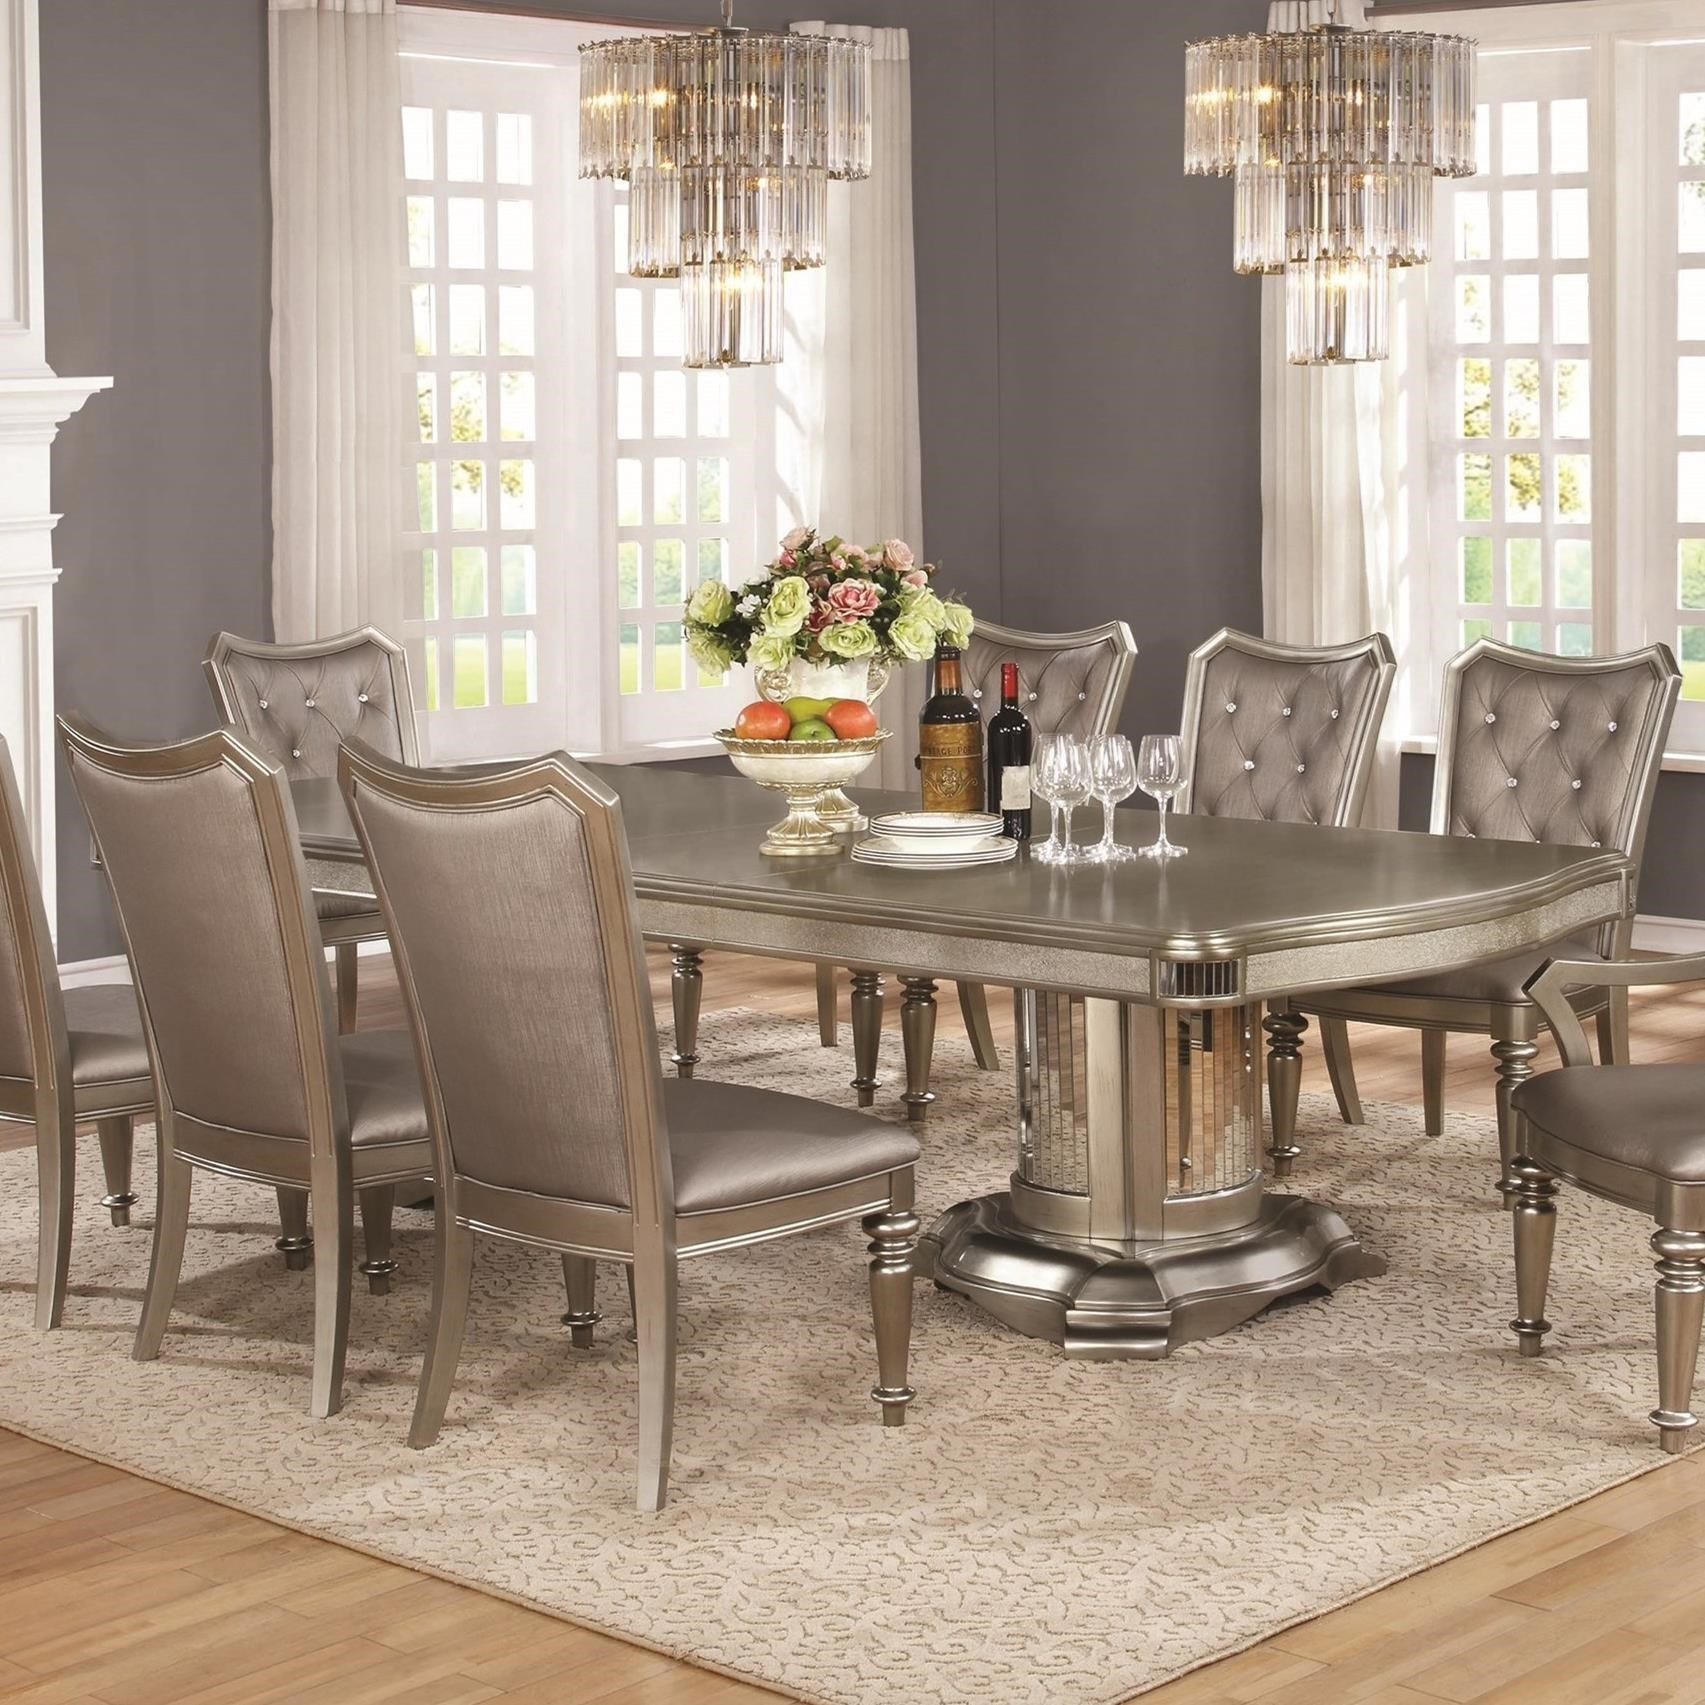 Andrea Formal Dining Room Set Coaster Furniture: Coaster Danette 107311 Double Pedestal Dining Table With